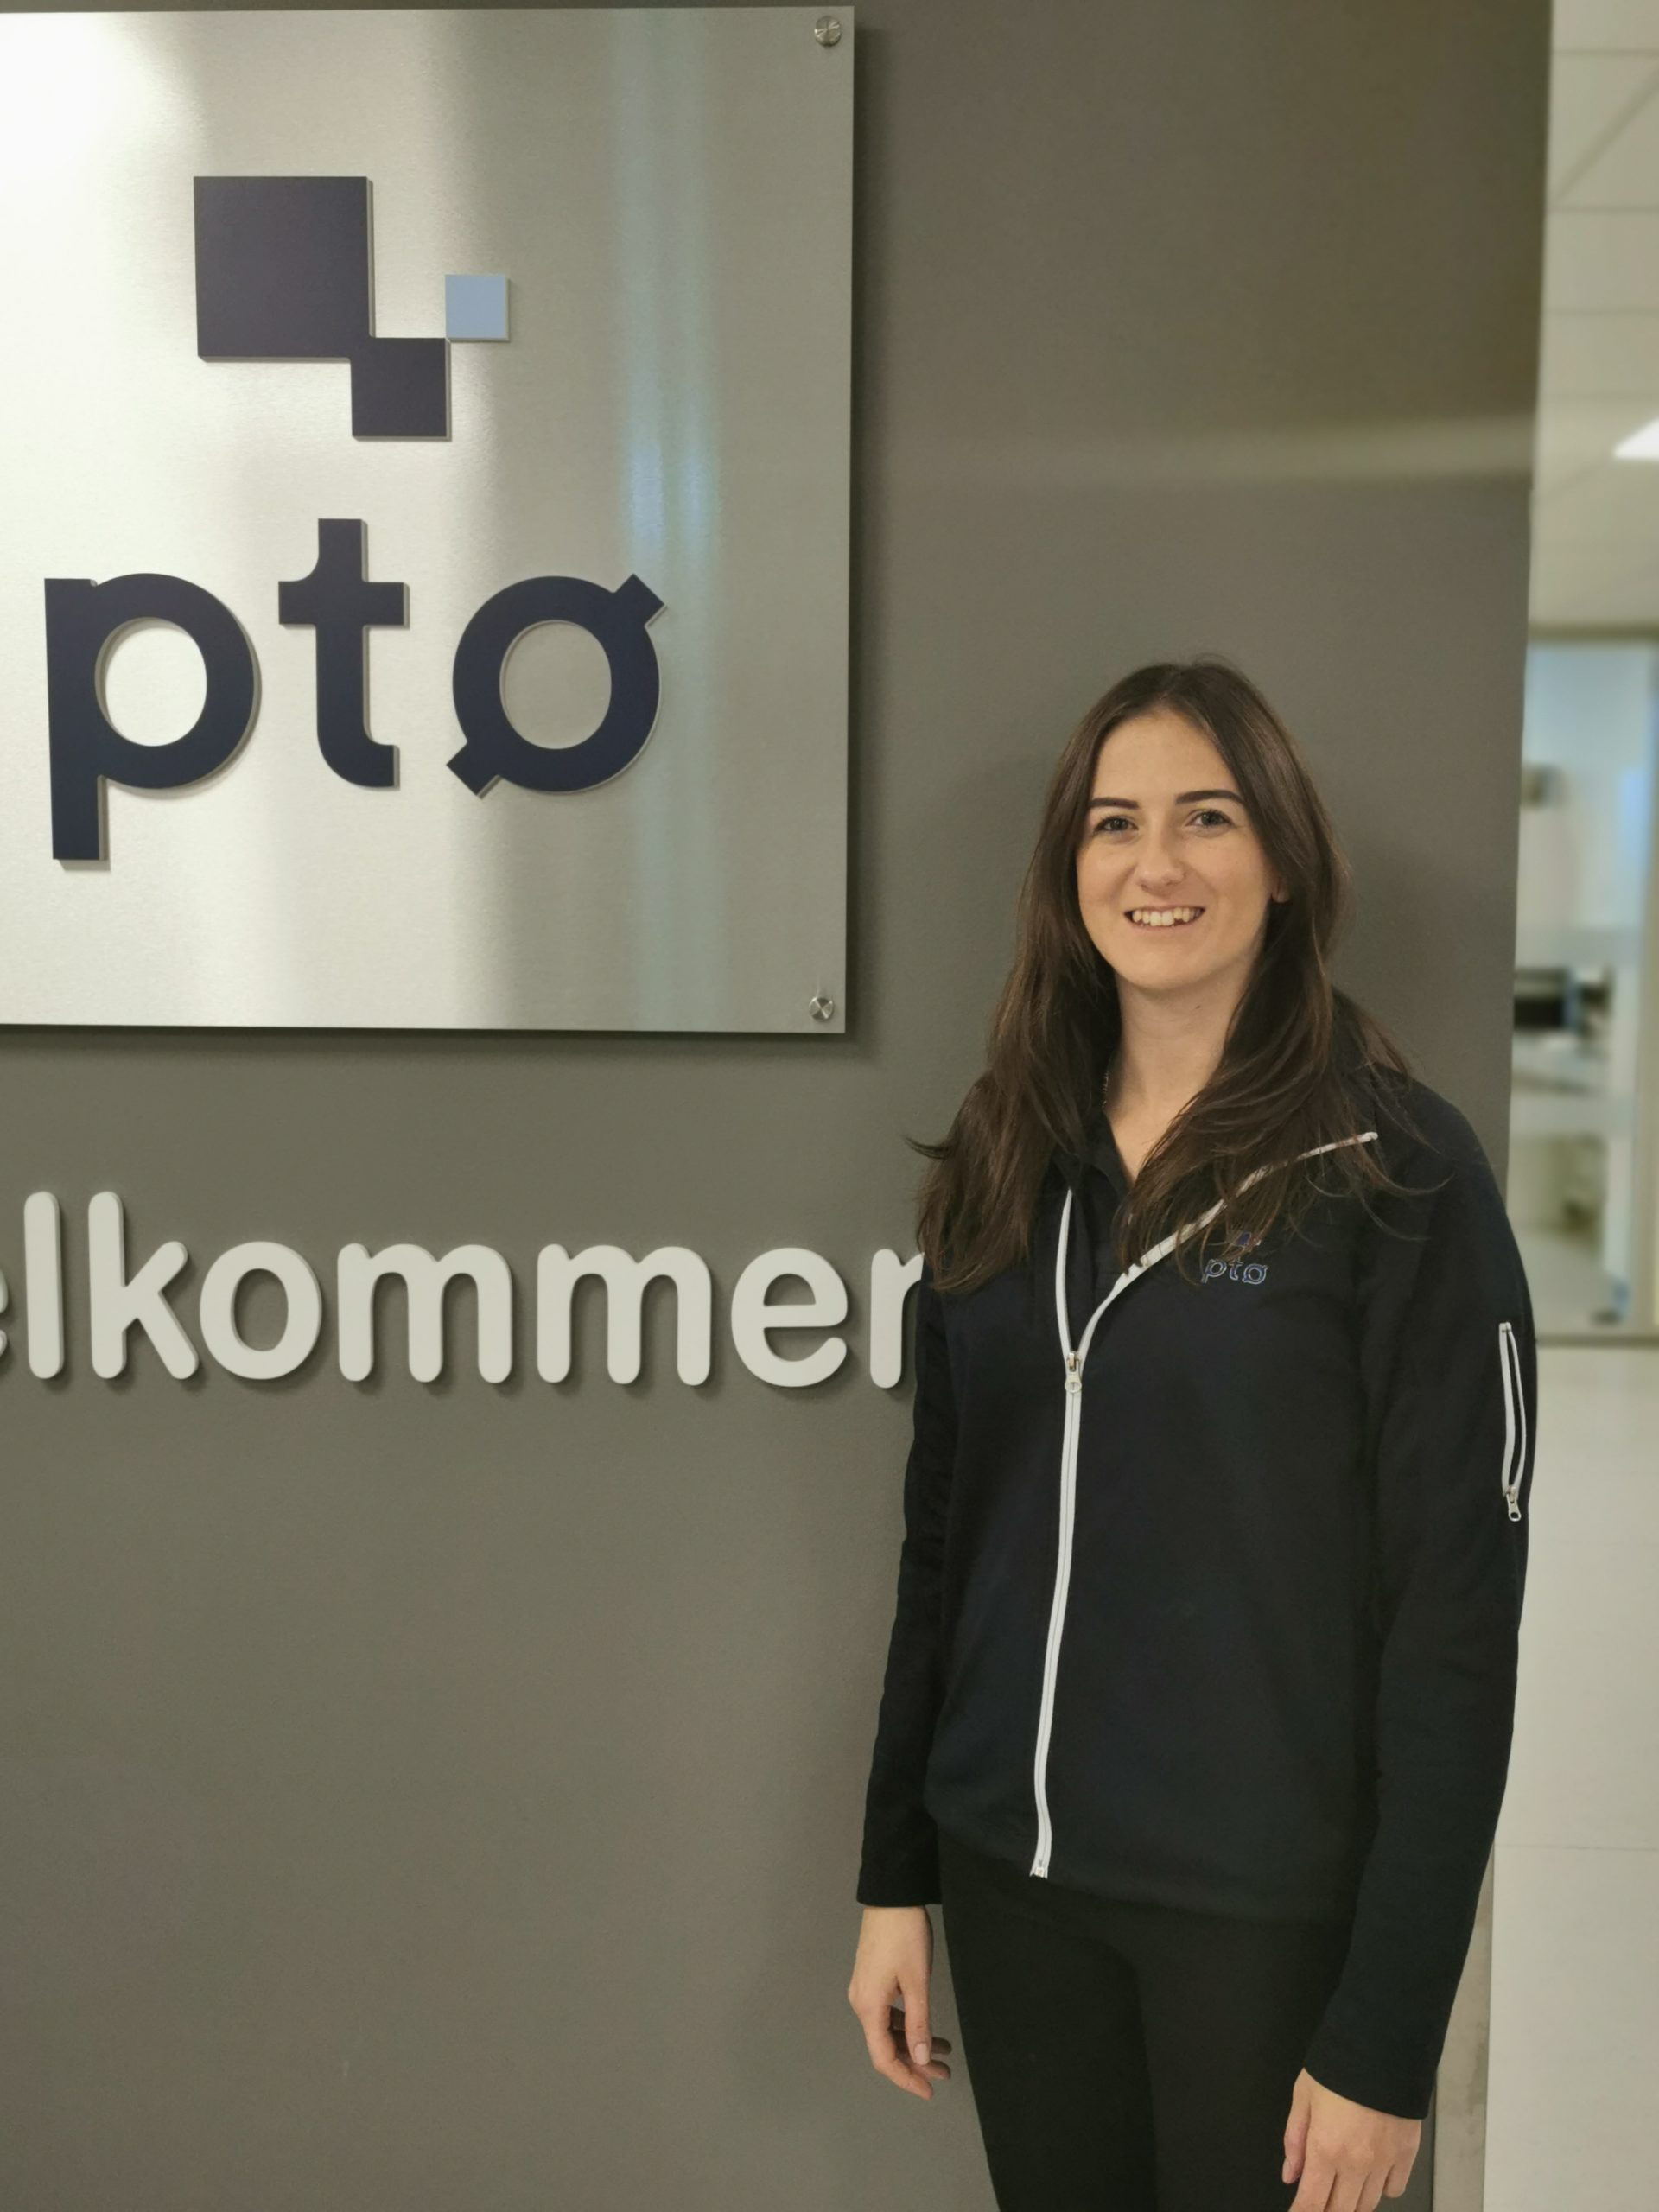 In the picture you see a young conductor with long brown hair on the right, smiling proudly, wearing a black sweat jacket and black trousers. She is standing in front of the PTO Norge logo. The logo shows three different size squares, two of them black, one grey, underneath the small letters pto.